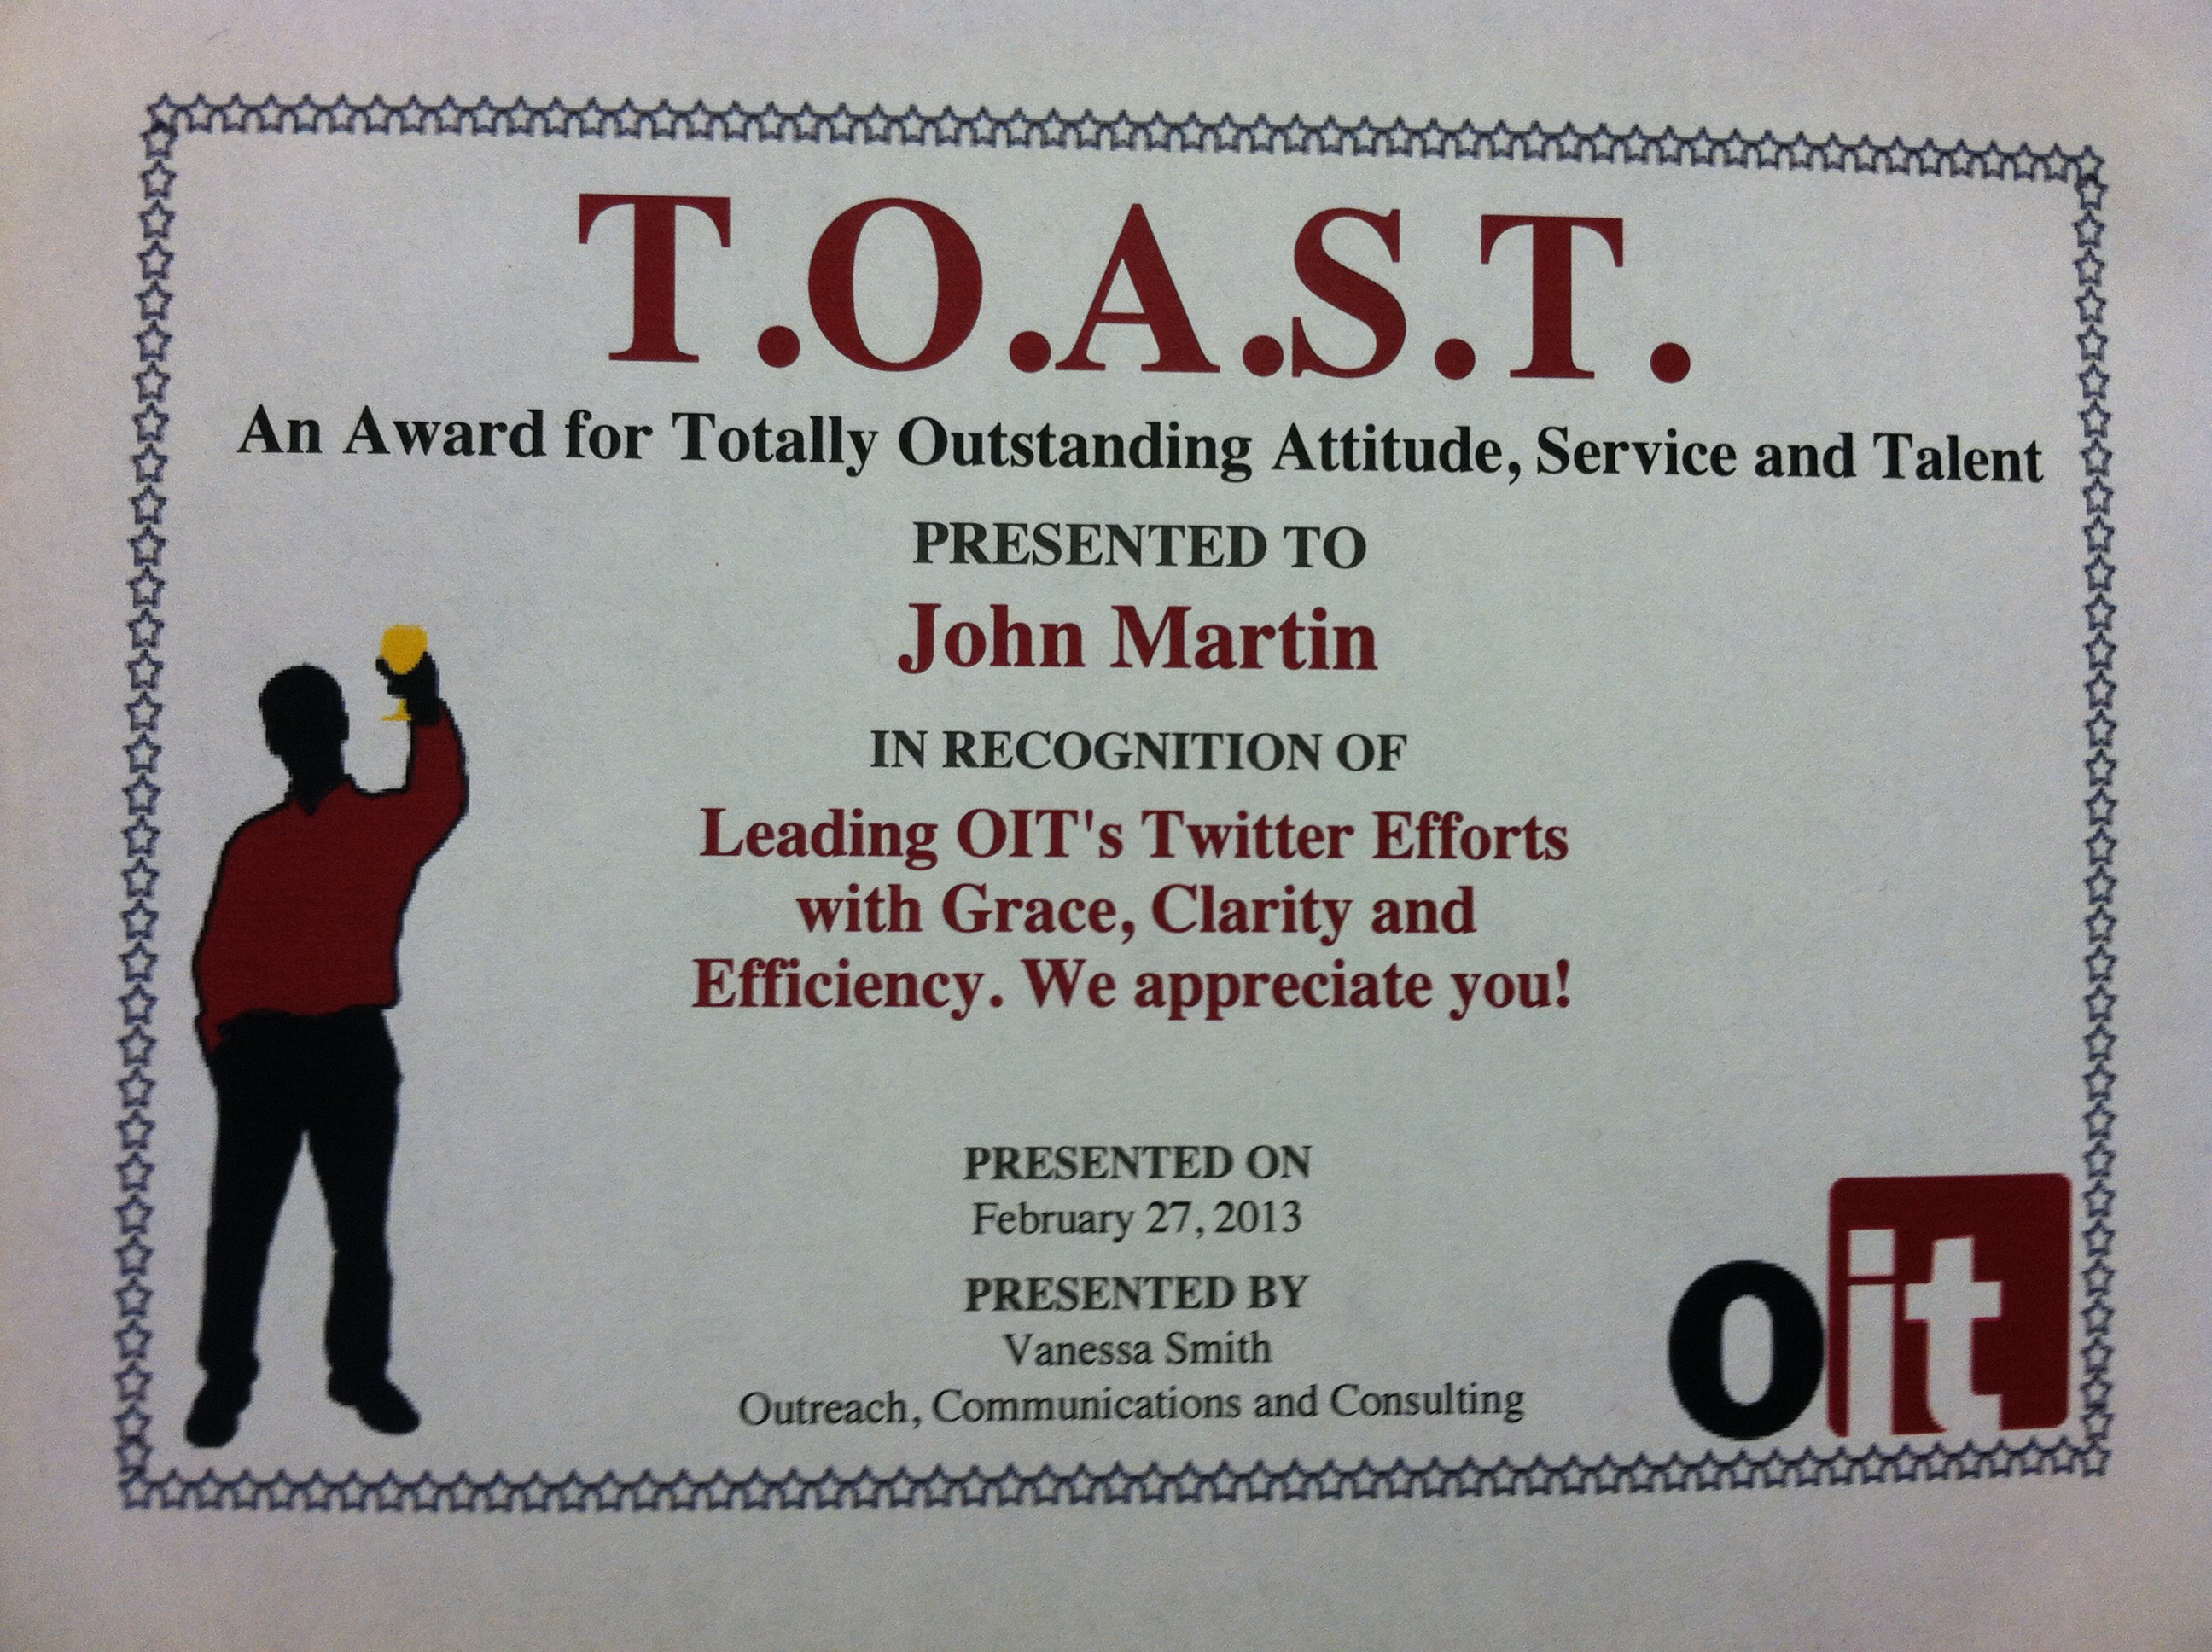 In recognition of Leading OIT's Twitter Efforts with Grace, Clarity and Efficiency. We appreciate you!